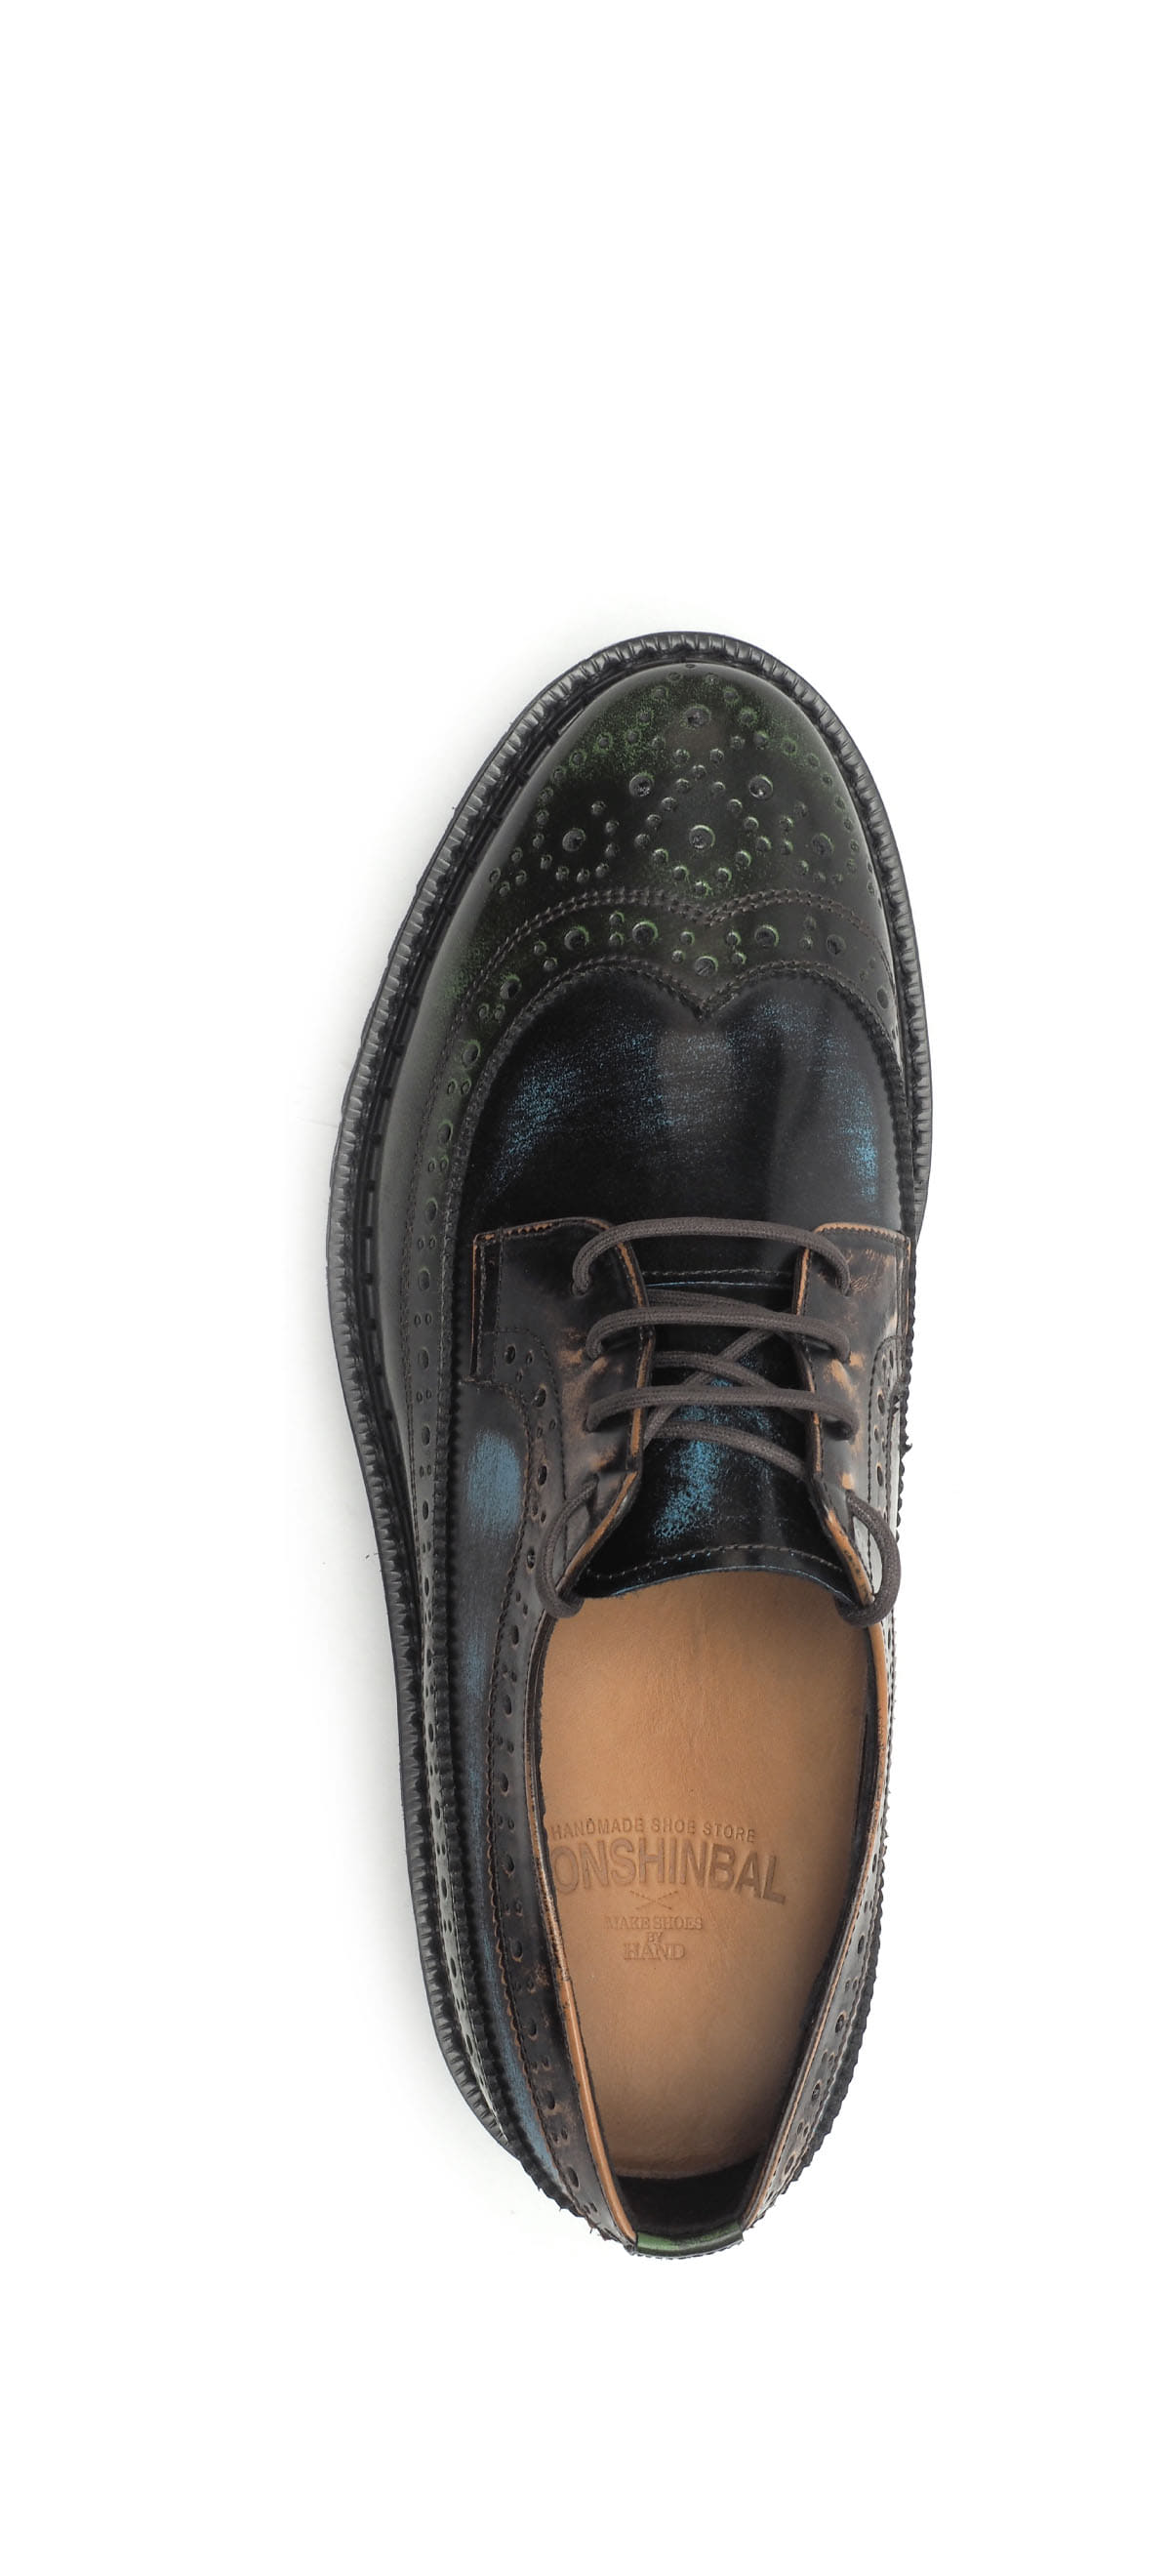 Wing tip 0027-102 Light Green Combination